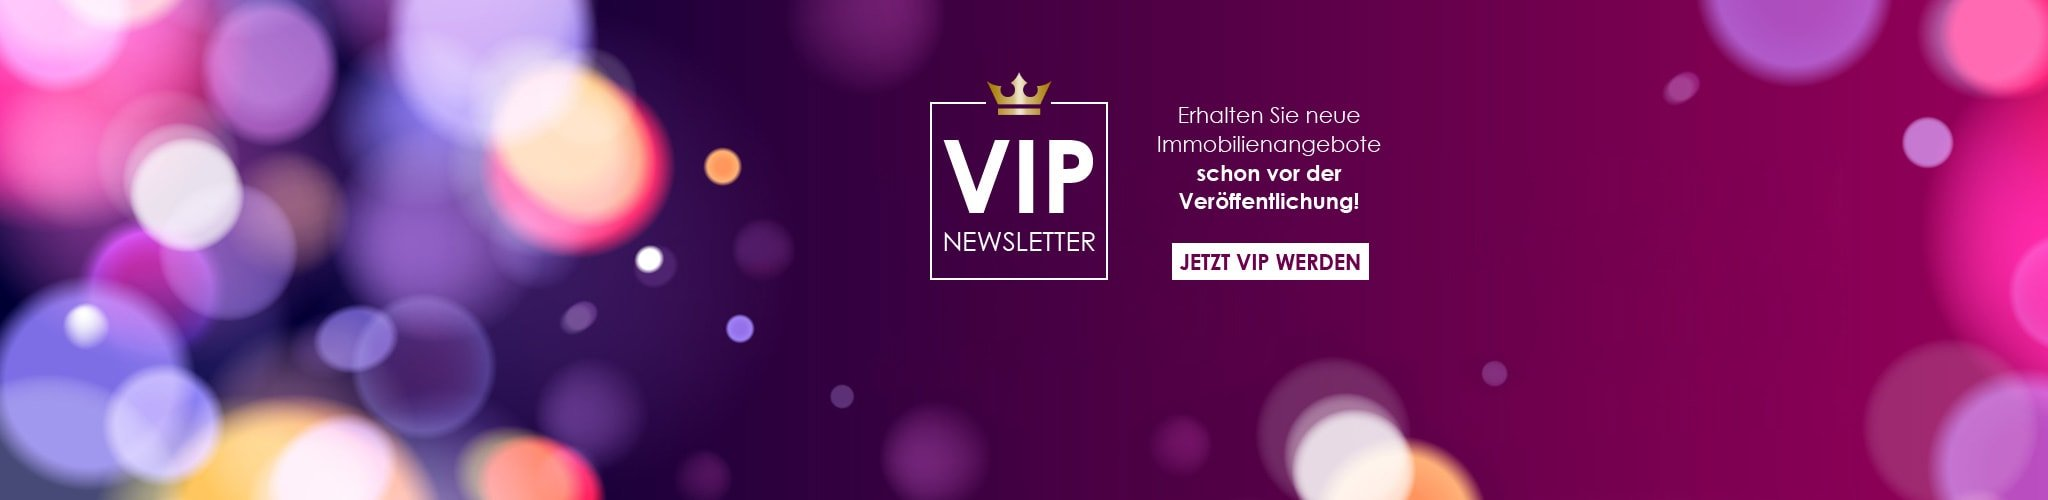 5plus Immobilien VIP Newsletter